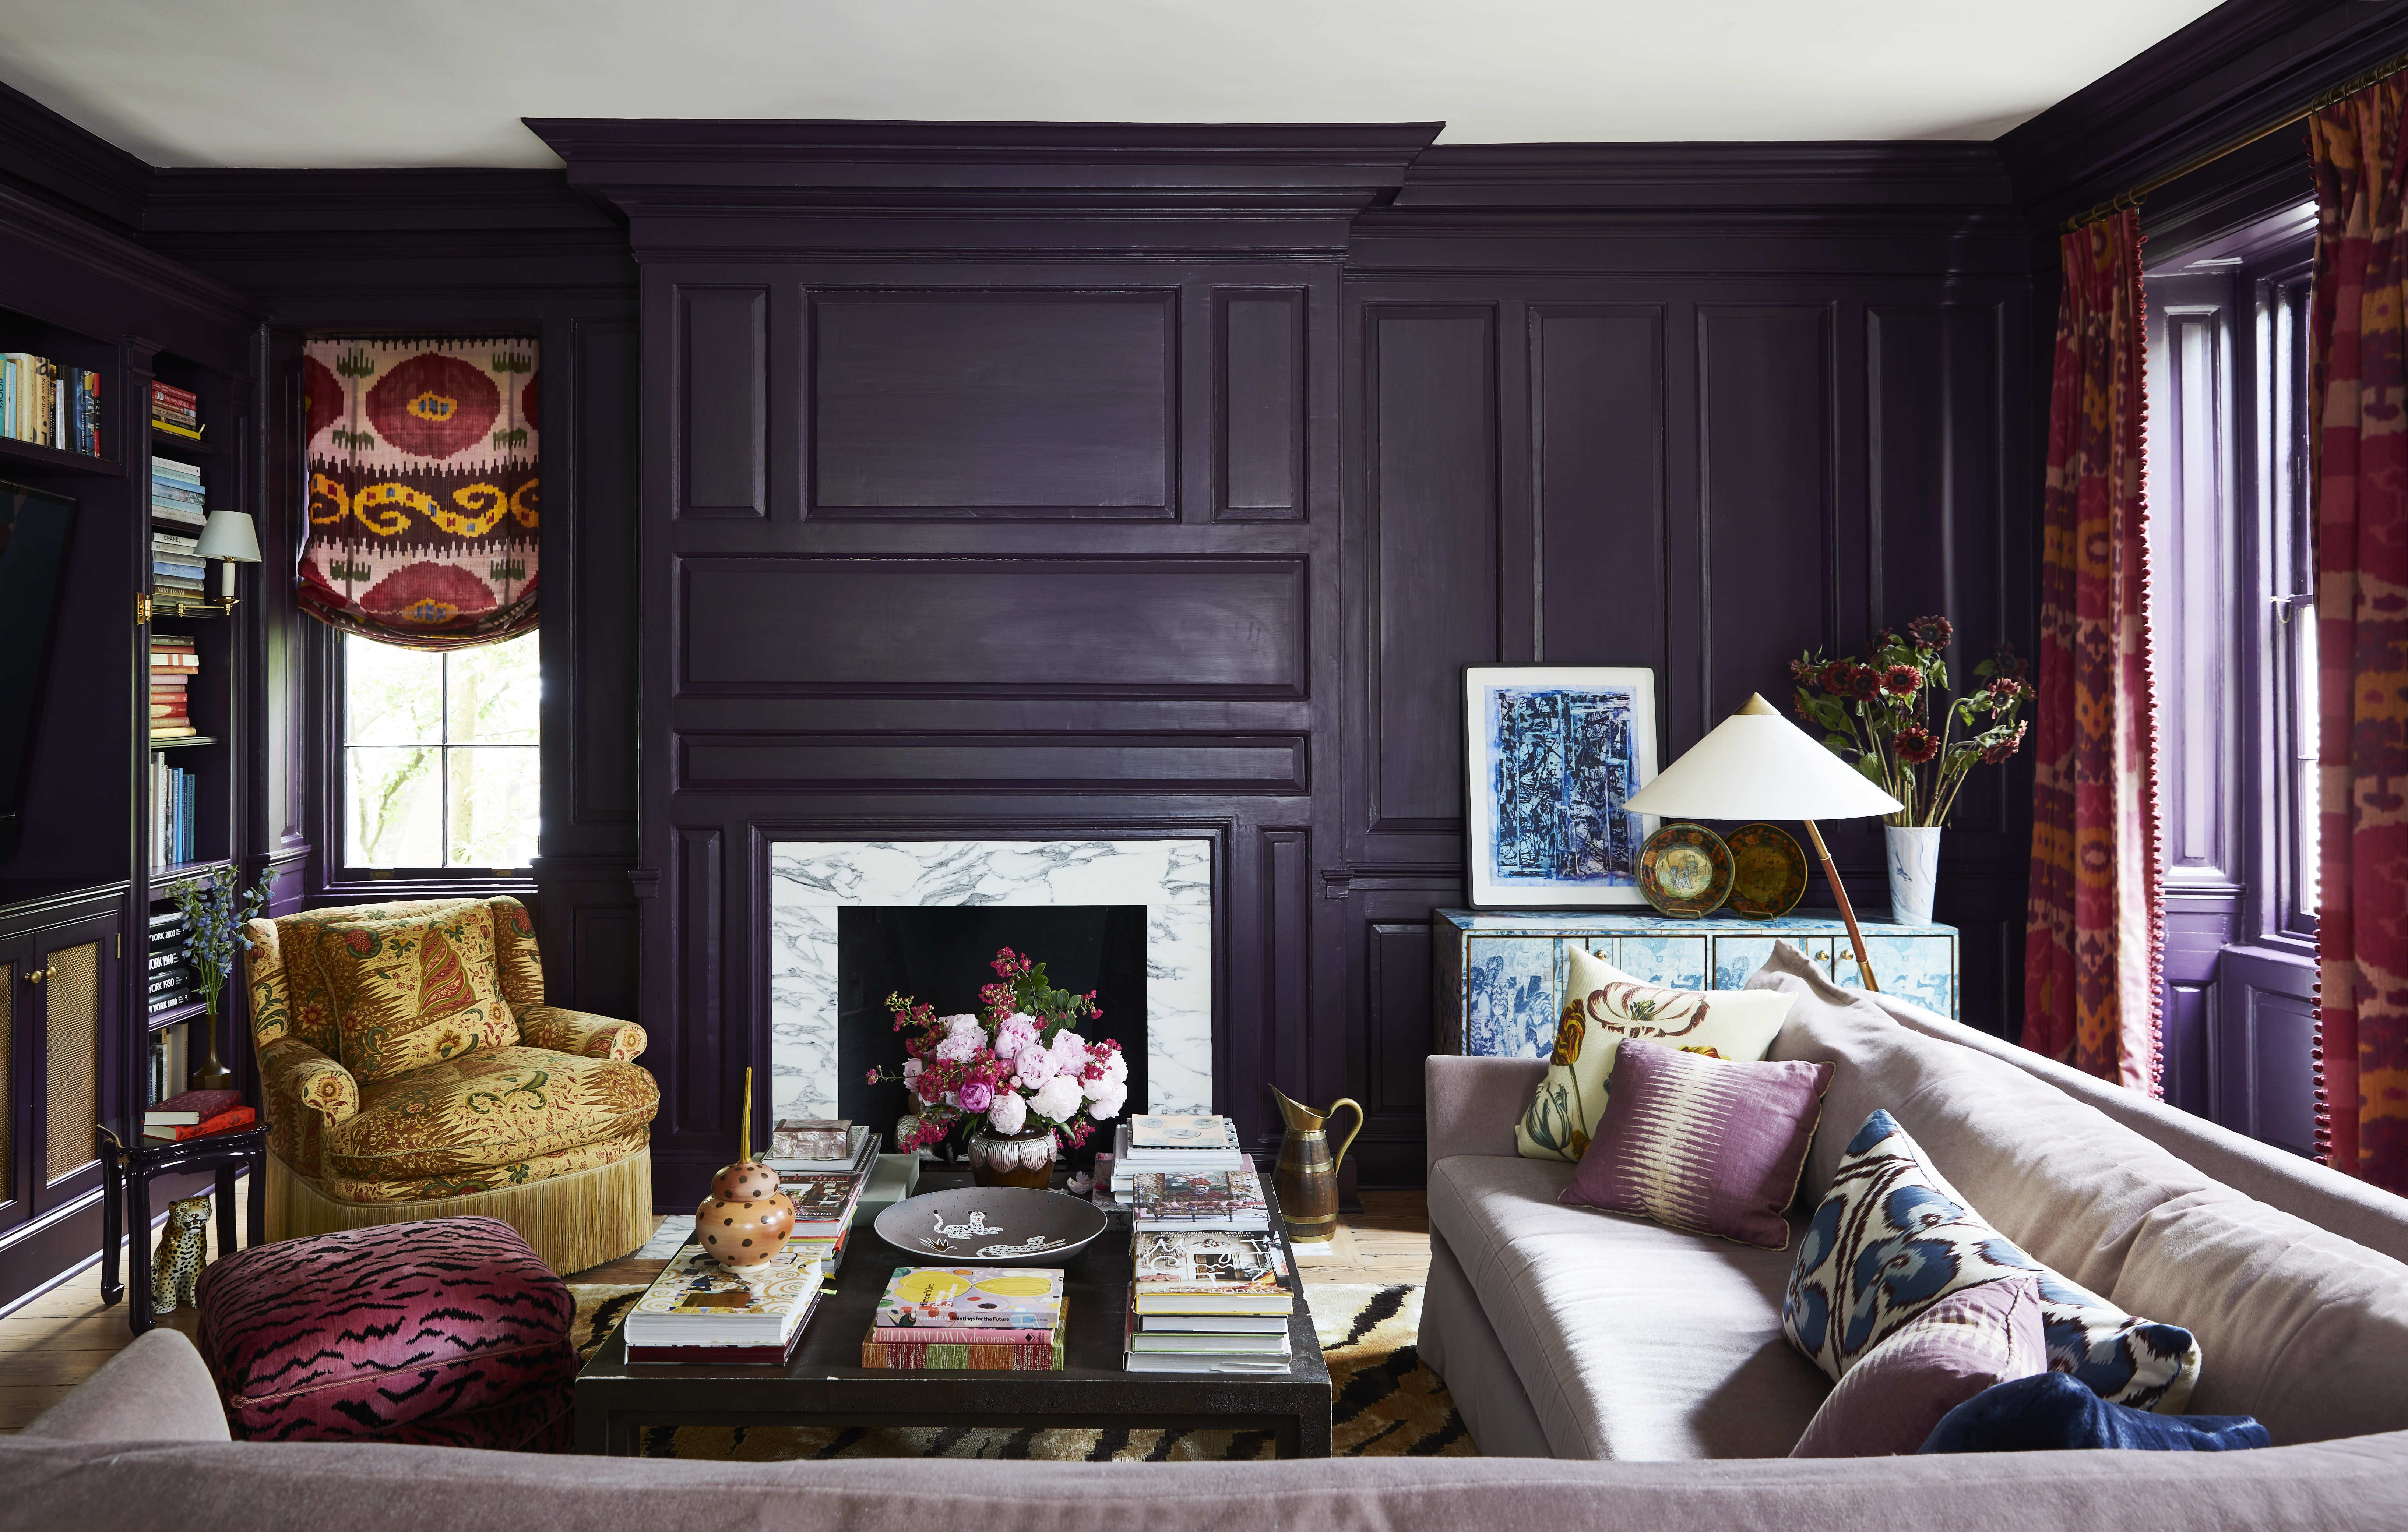 62 Unexpected Room Colors 2021 Best Room Color Combinations